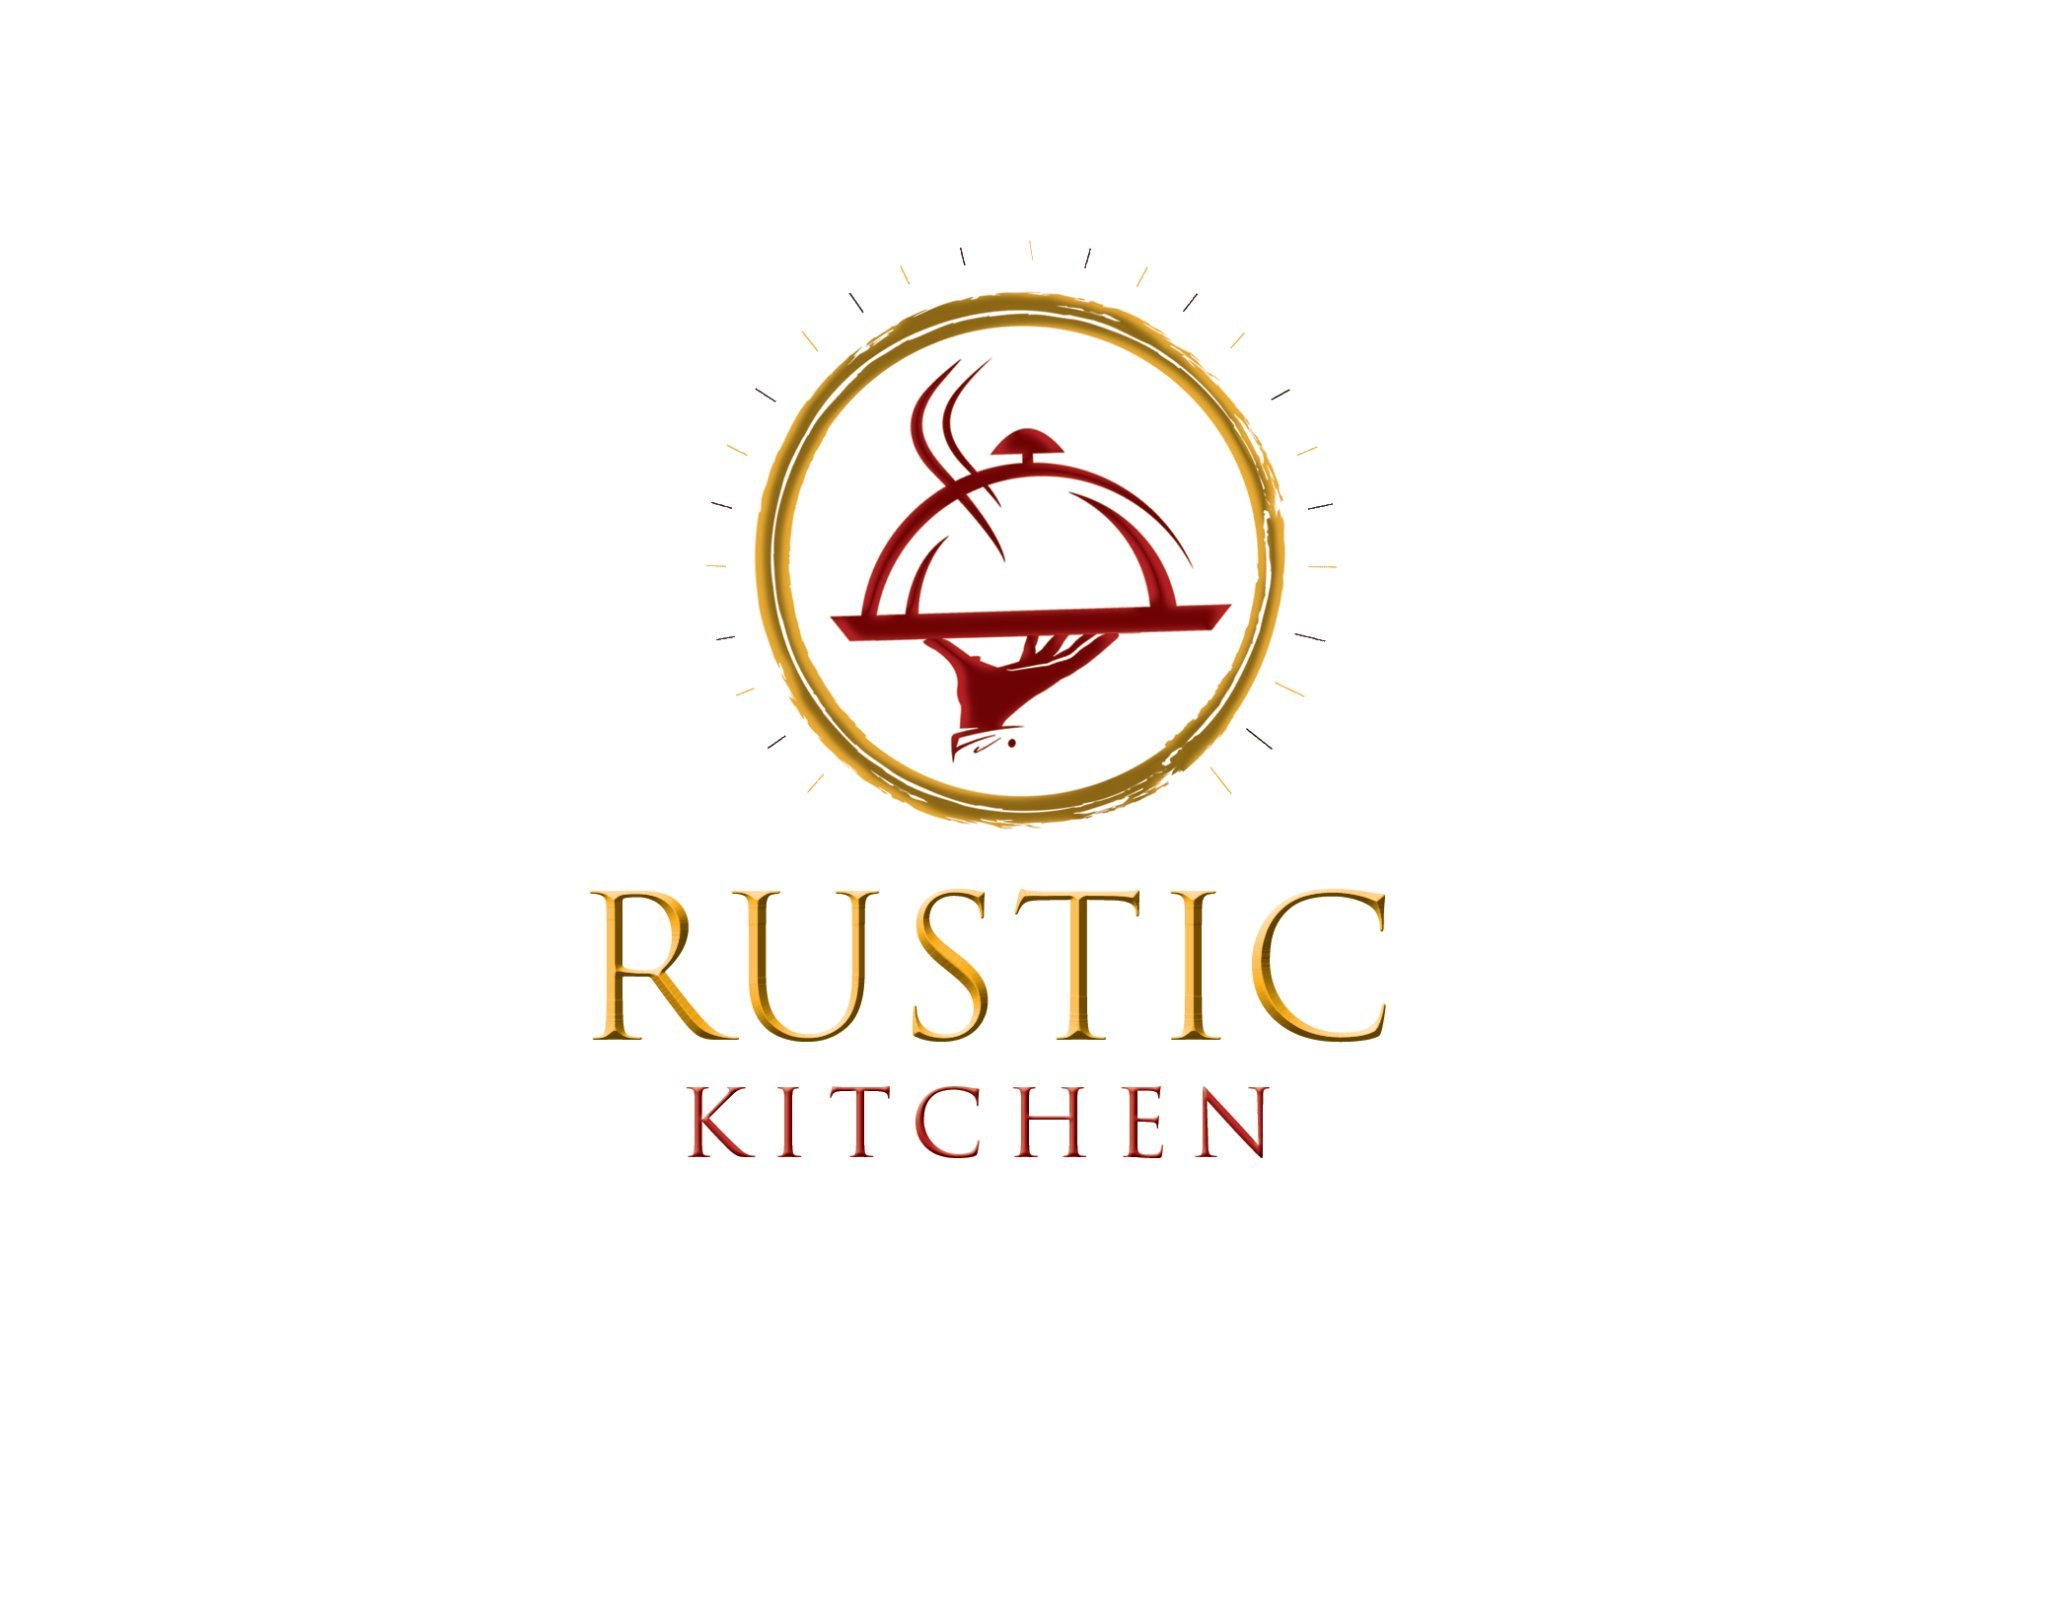 Rustic Kitchen Kenya ™